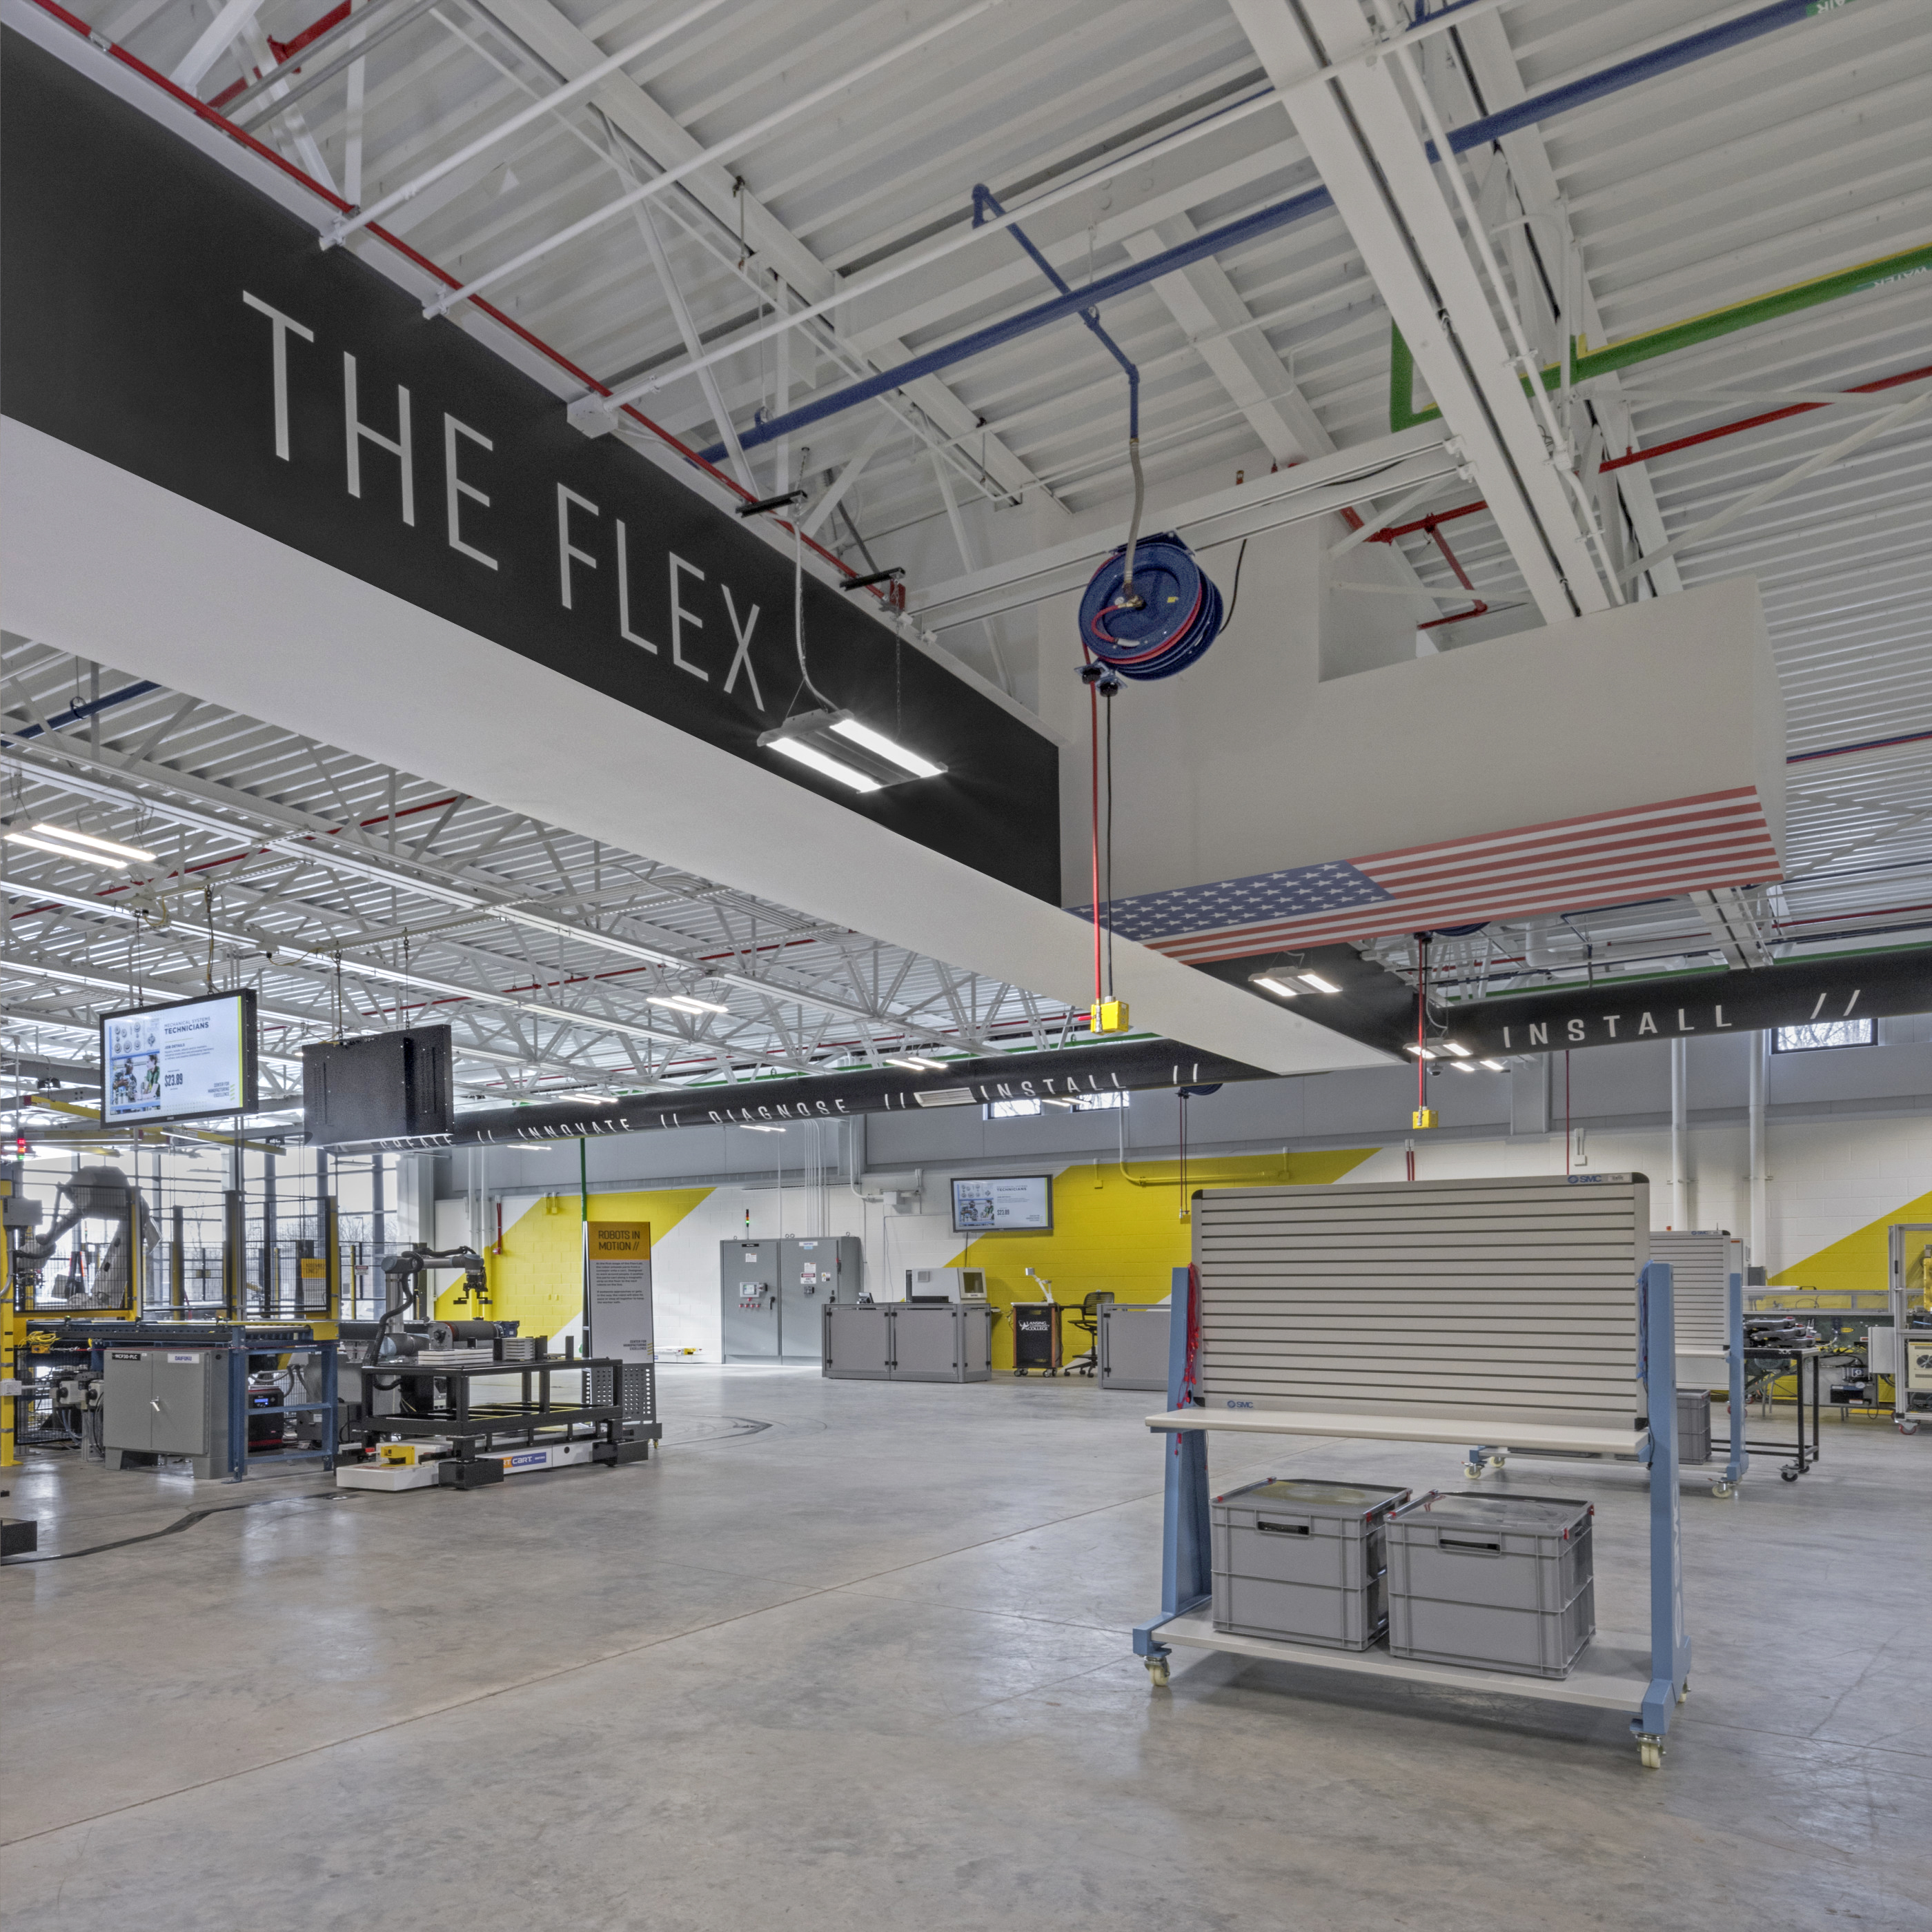 The Flex branded space